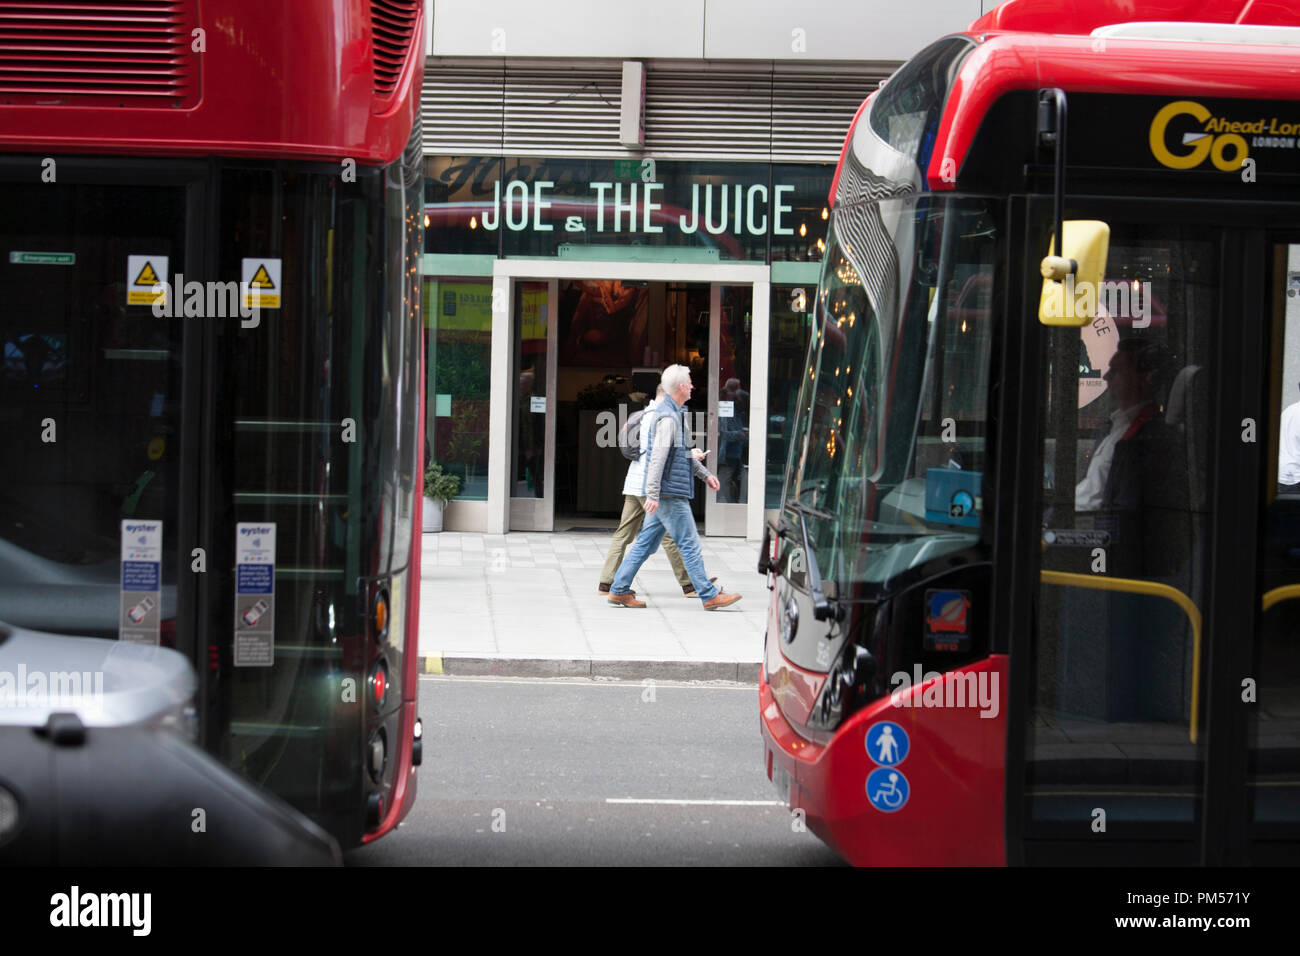 Joe and the juice, restaurant, London - Stock Image